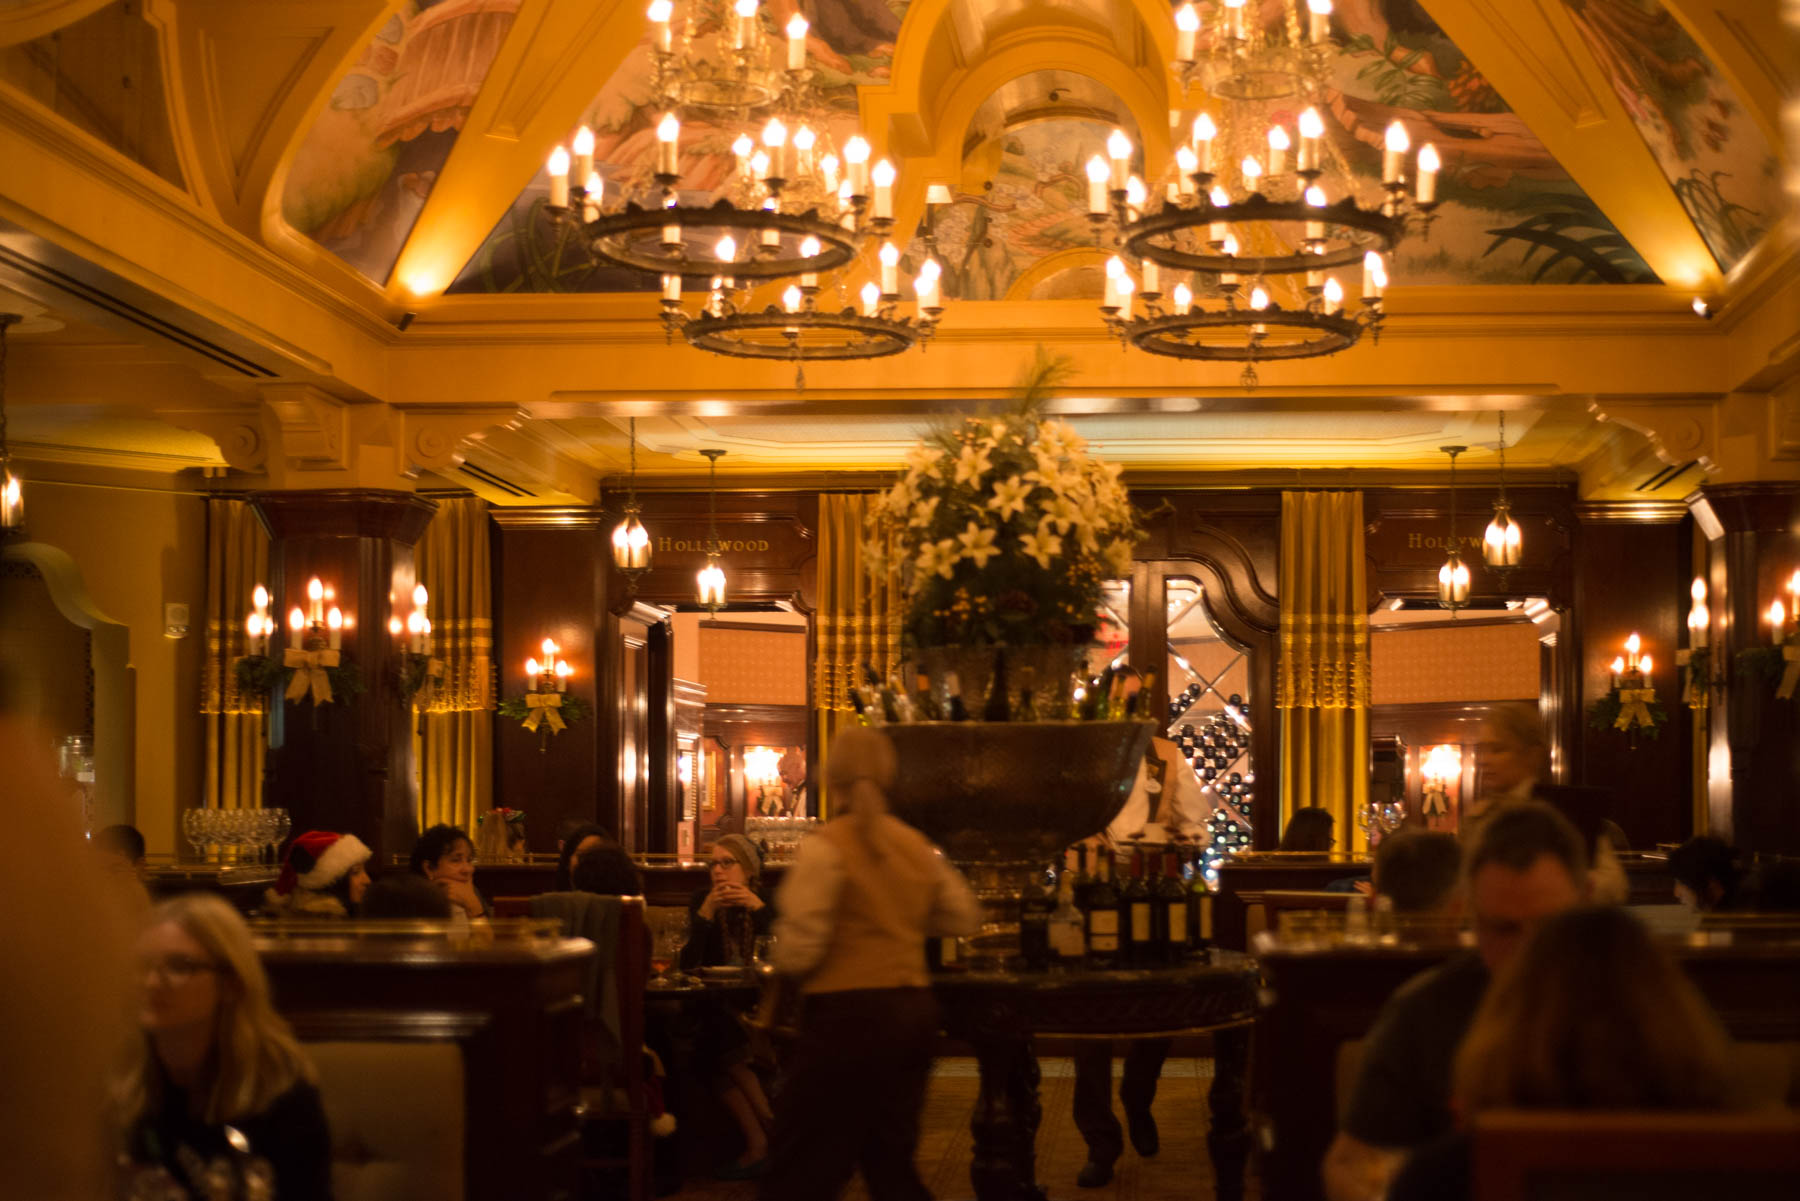 Carthay Circle Restaurant Dining Room at Disneyland's California Adventure